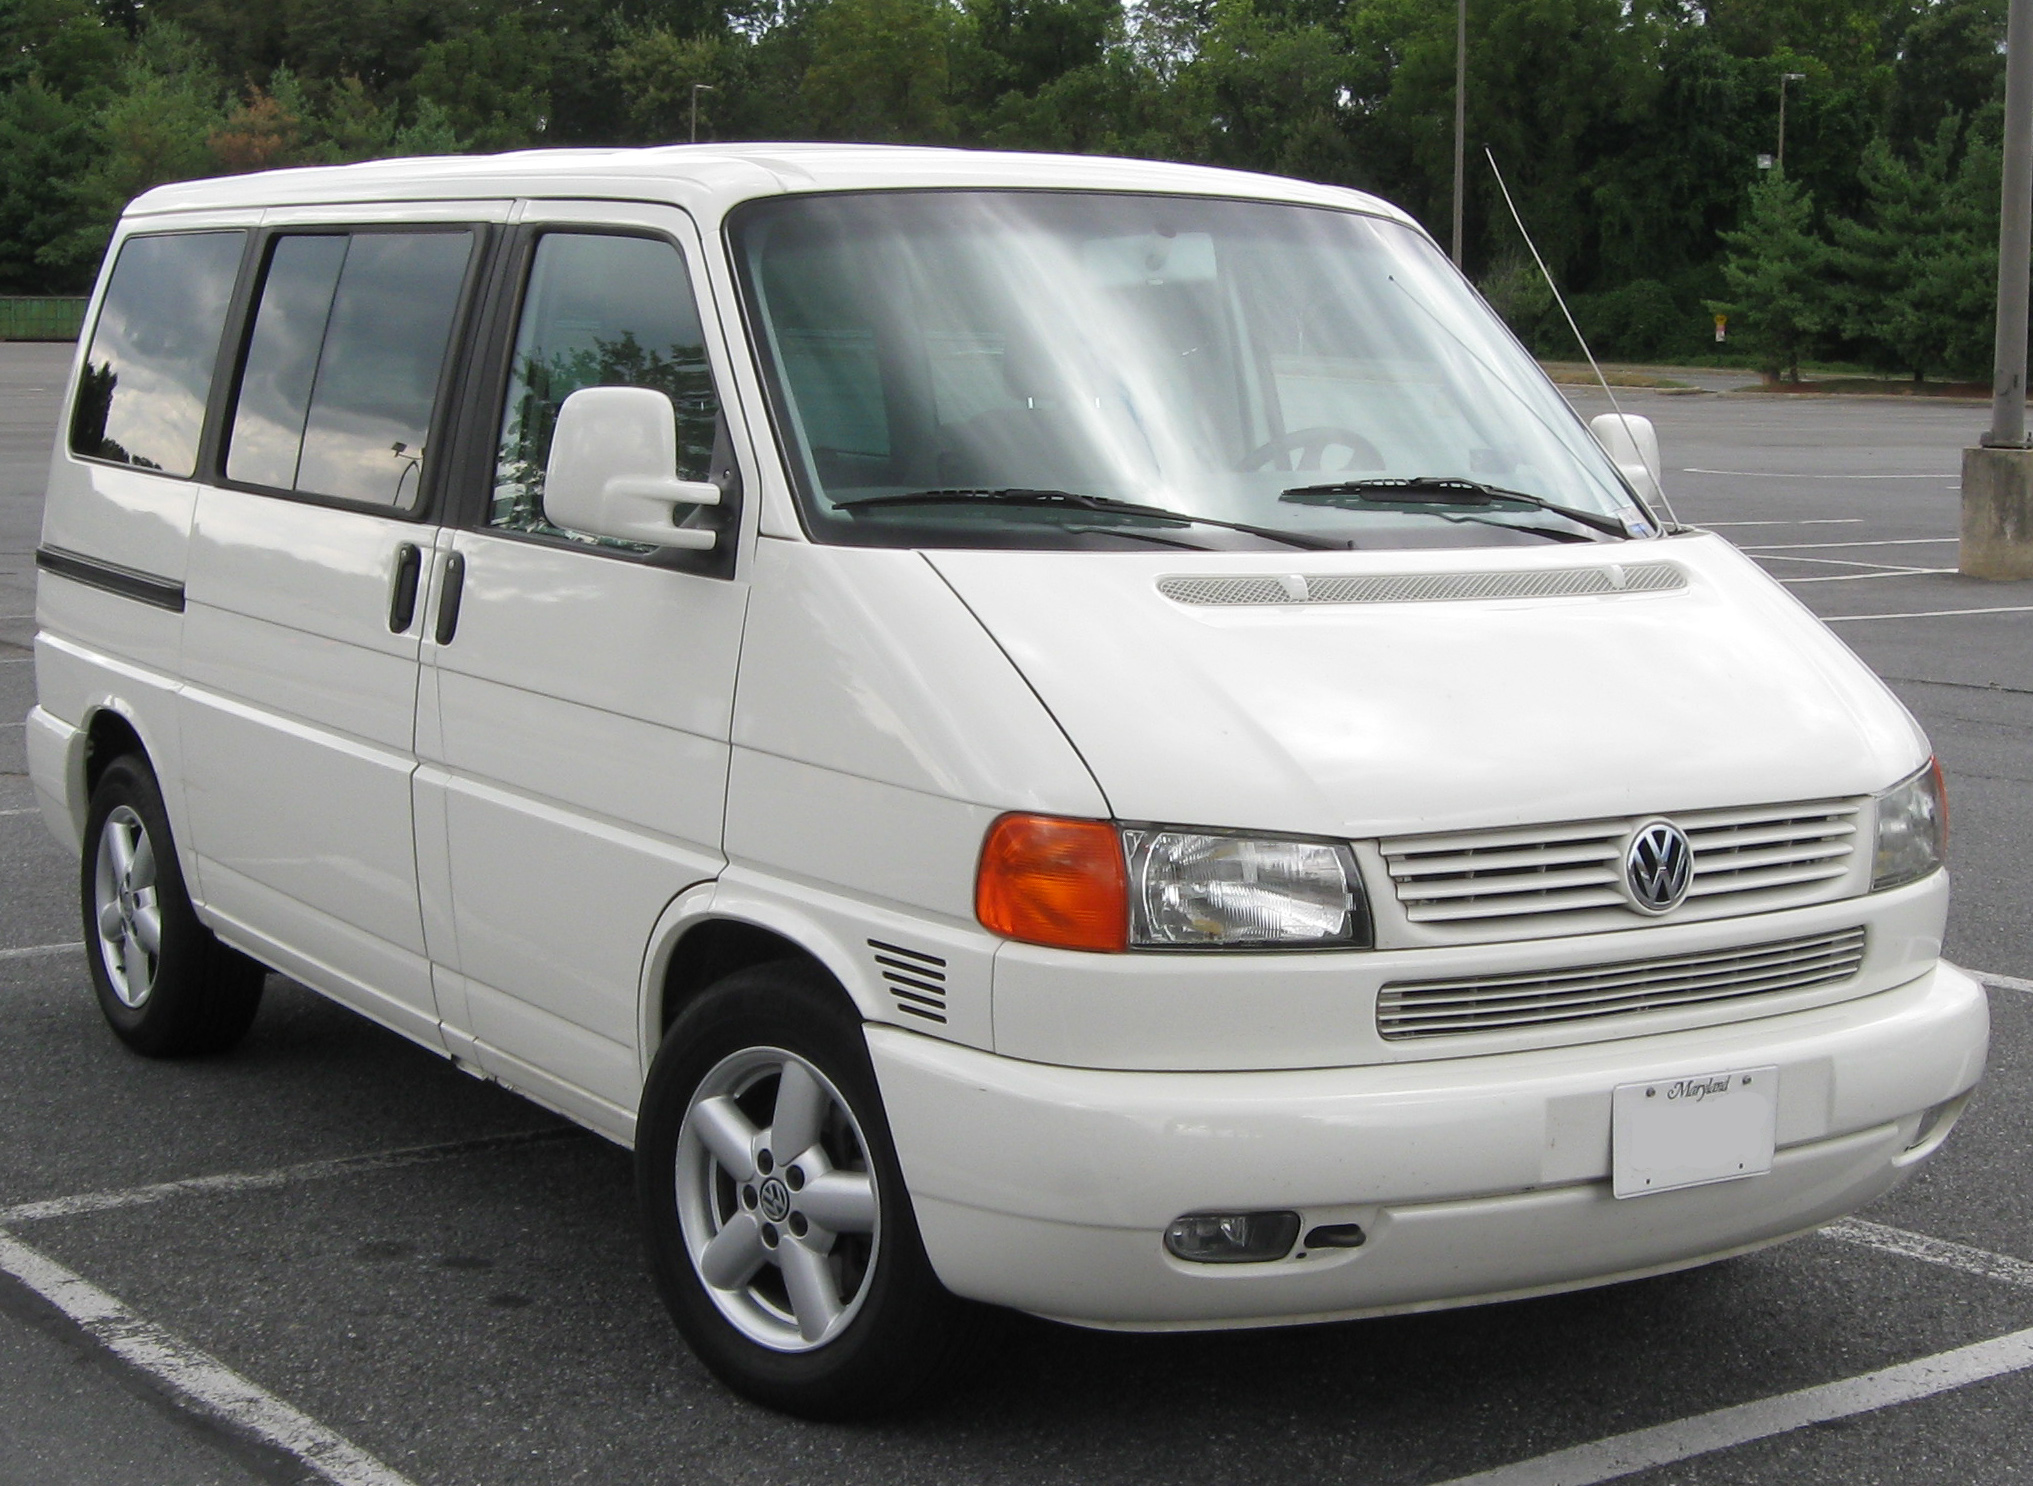 2002 volkswagen caravelle i t4 pictures information. Black Bedroom Furniture Sets. Home Design Ideas